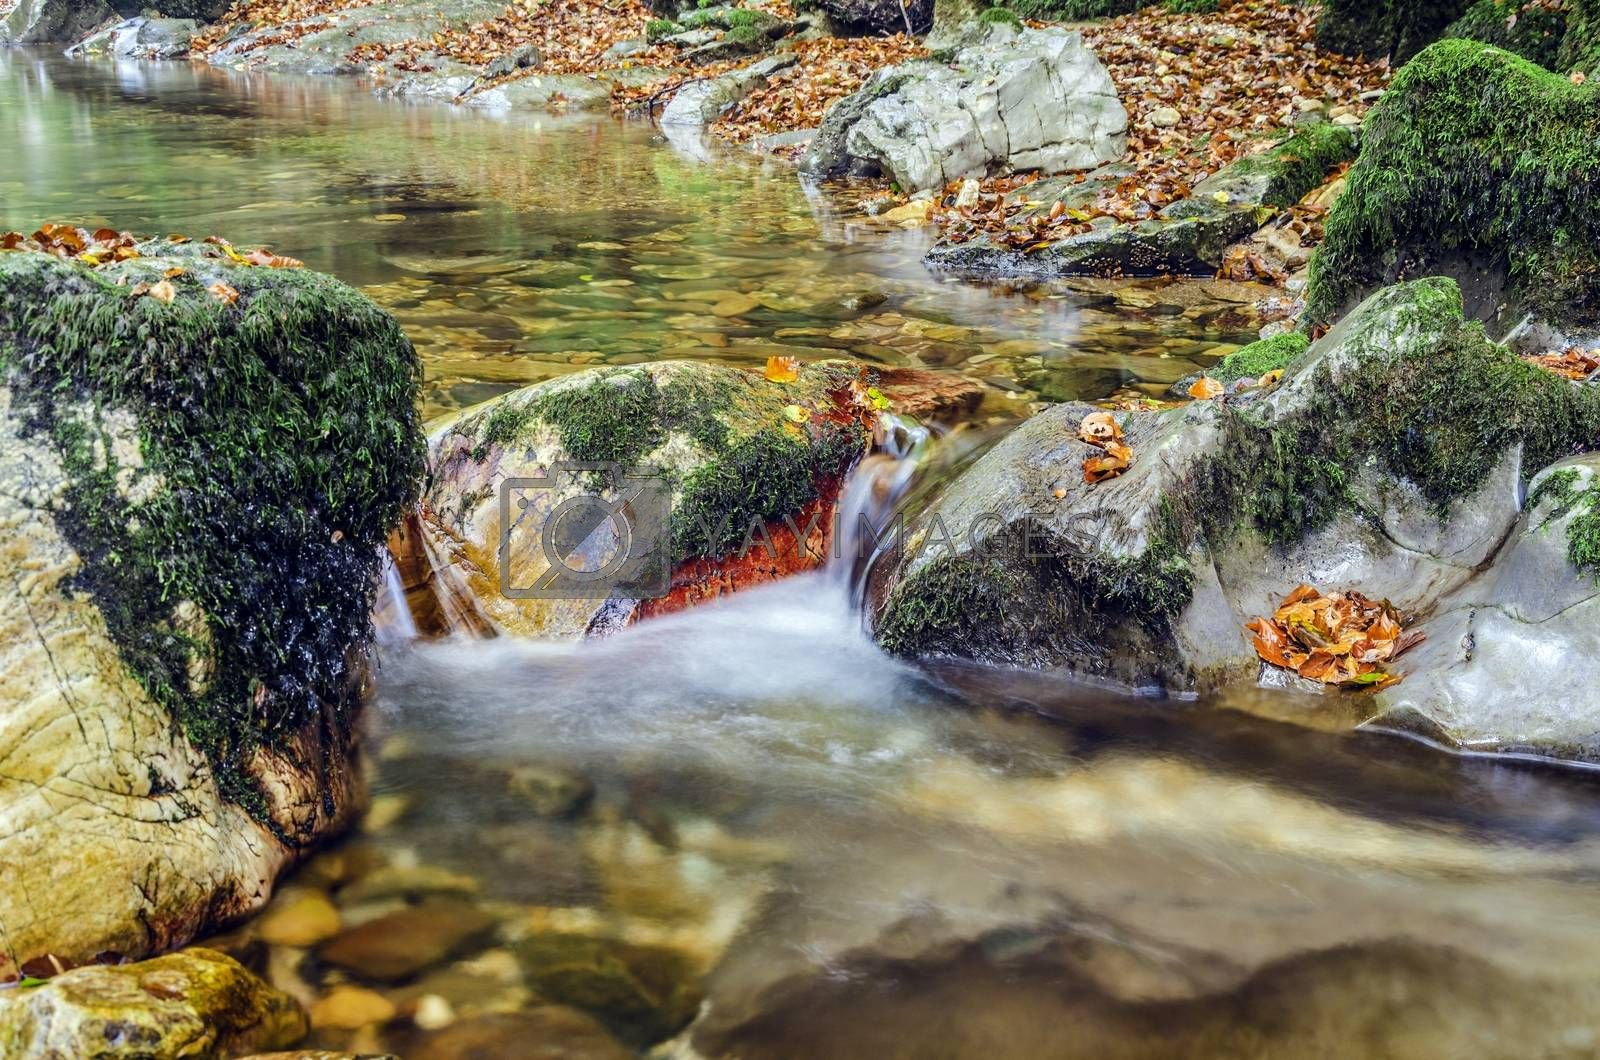 Small spring inside the Navarra's forest in Spain. Clean and detailed for precise work!